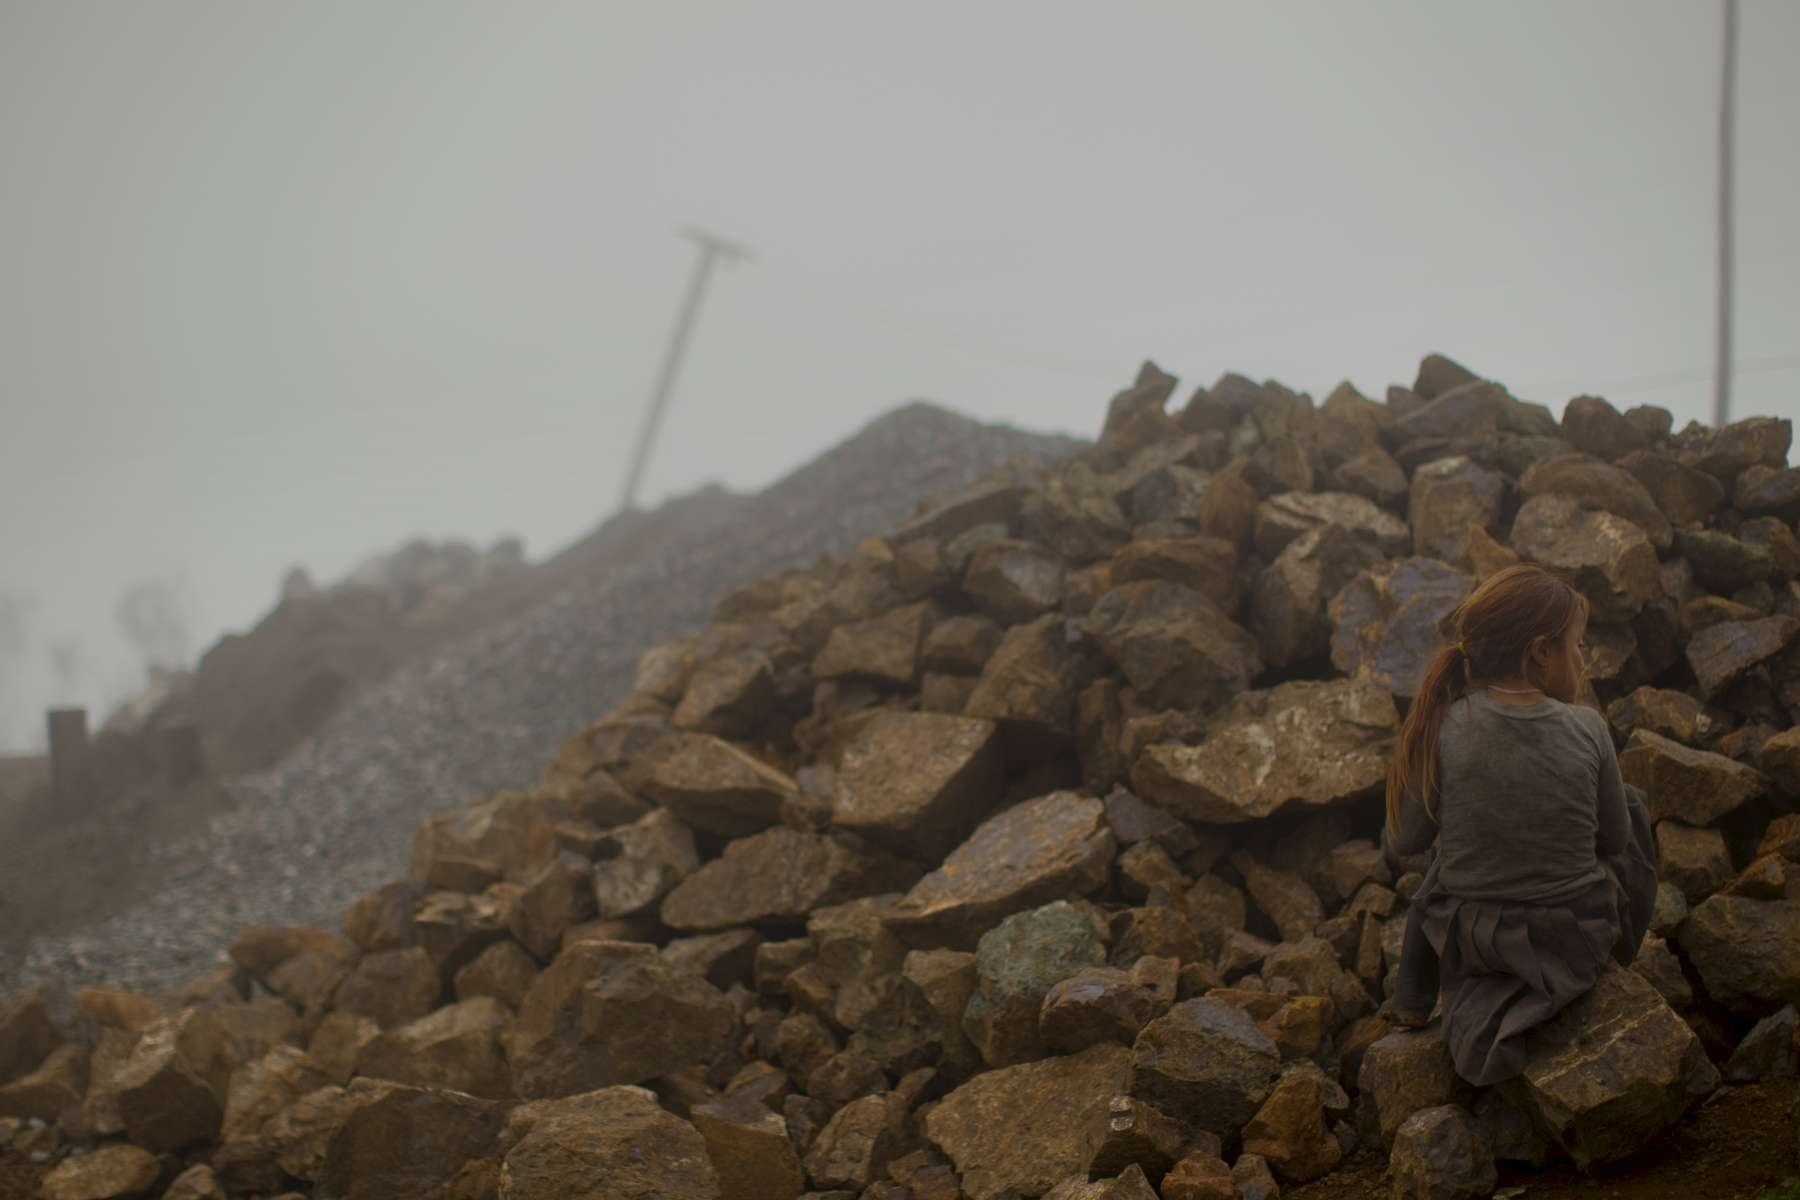 2/26/11 - Cañar Province; Ecuador - A young girl blends into a pile of rocks next to her home, high in the Andes in an isolated pocket of Ecuador. This is a scene setter near the home of Murder suspect Luis Guaman's estranged wife. Guaman is now in an Ecuadoran prison charges of forgery and using a false passport. He left behind four sons when he immigrated to the United States to work. He is the primary suspect in the bludgeoning deaths of Maria Avelina Palaguachi-Cela and her 2-year-old son, Brian. Story by Maria Sacchetti/Globe Staff. Dina Rudick/Globe Staff.